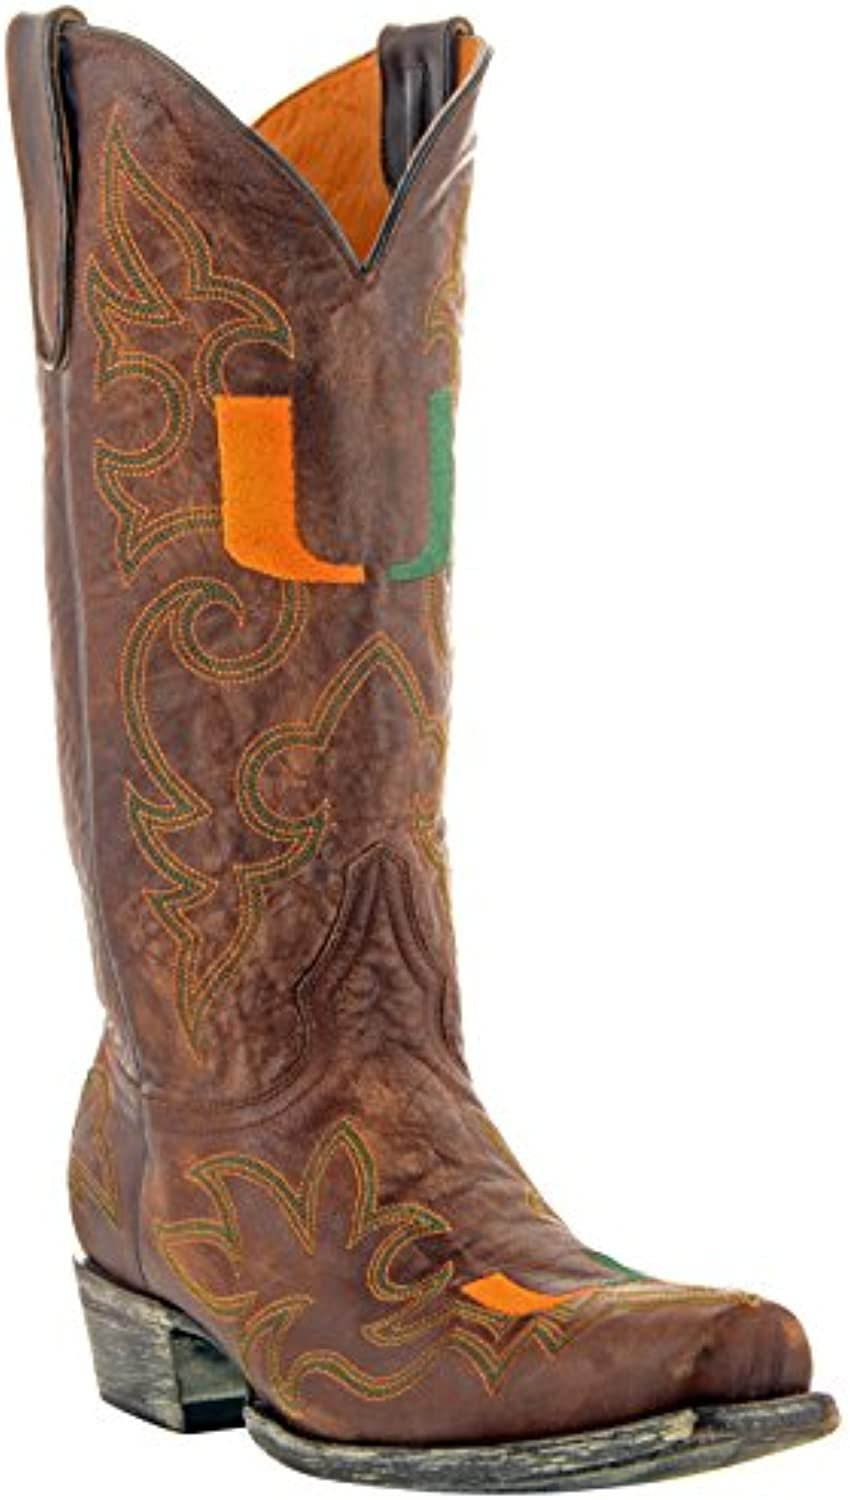 NCAA Miami Hurricanes Herren Gameday Stiefel